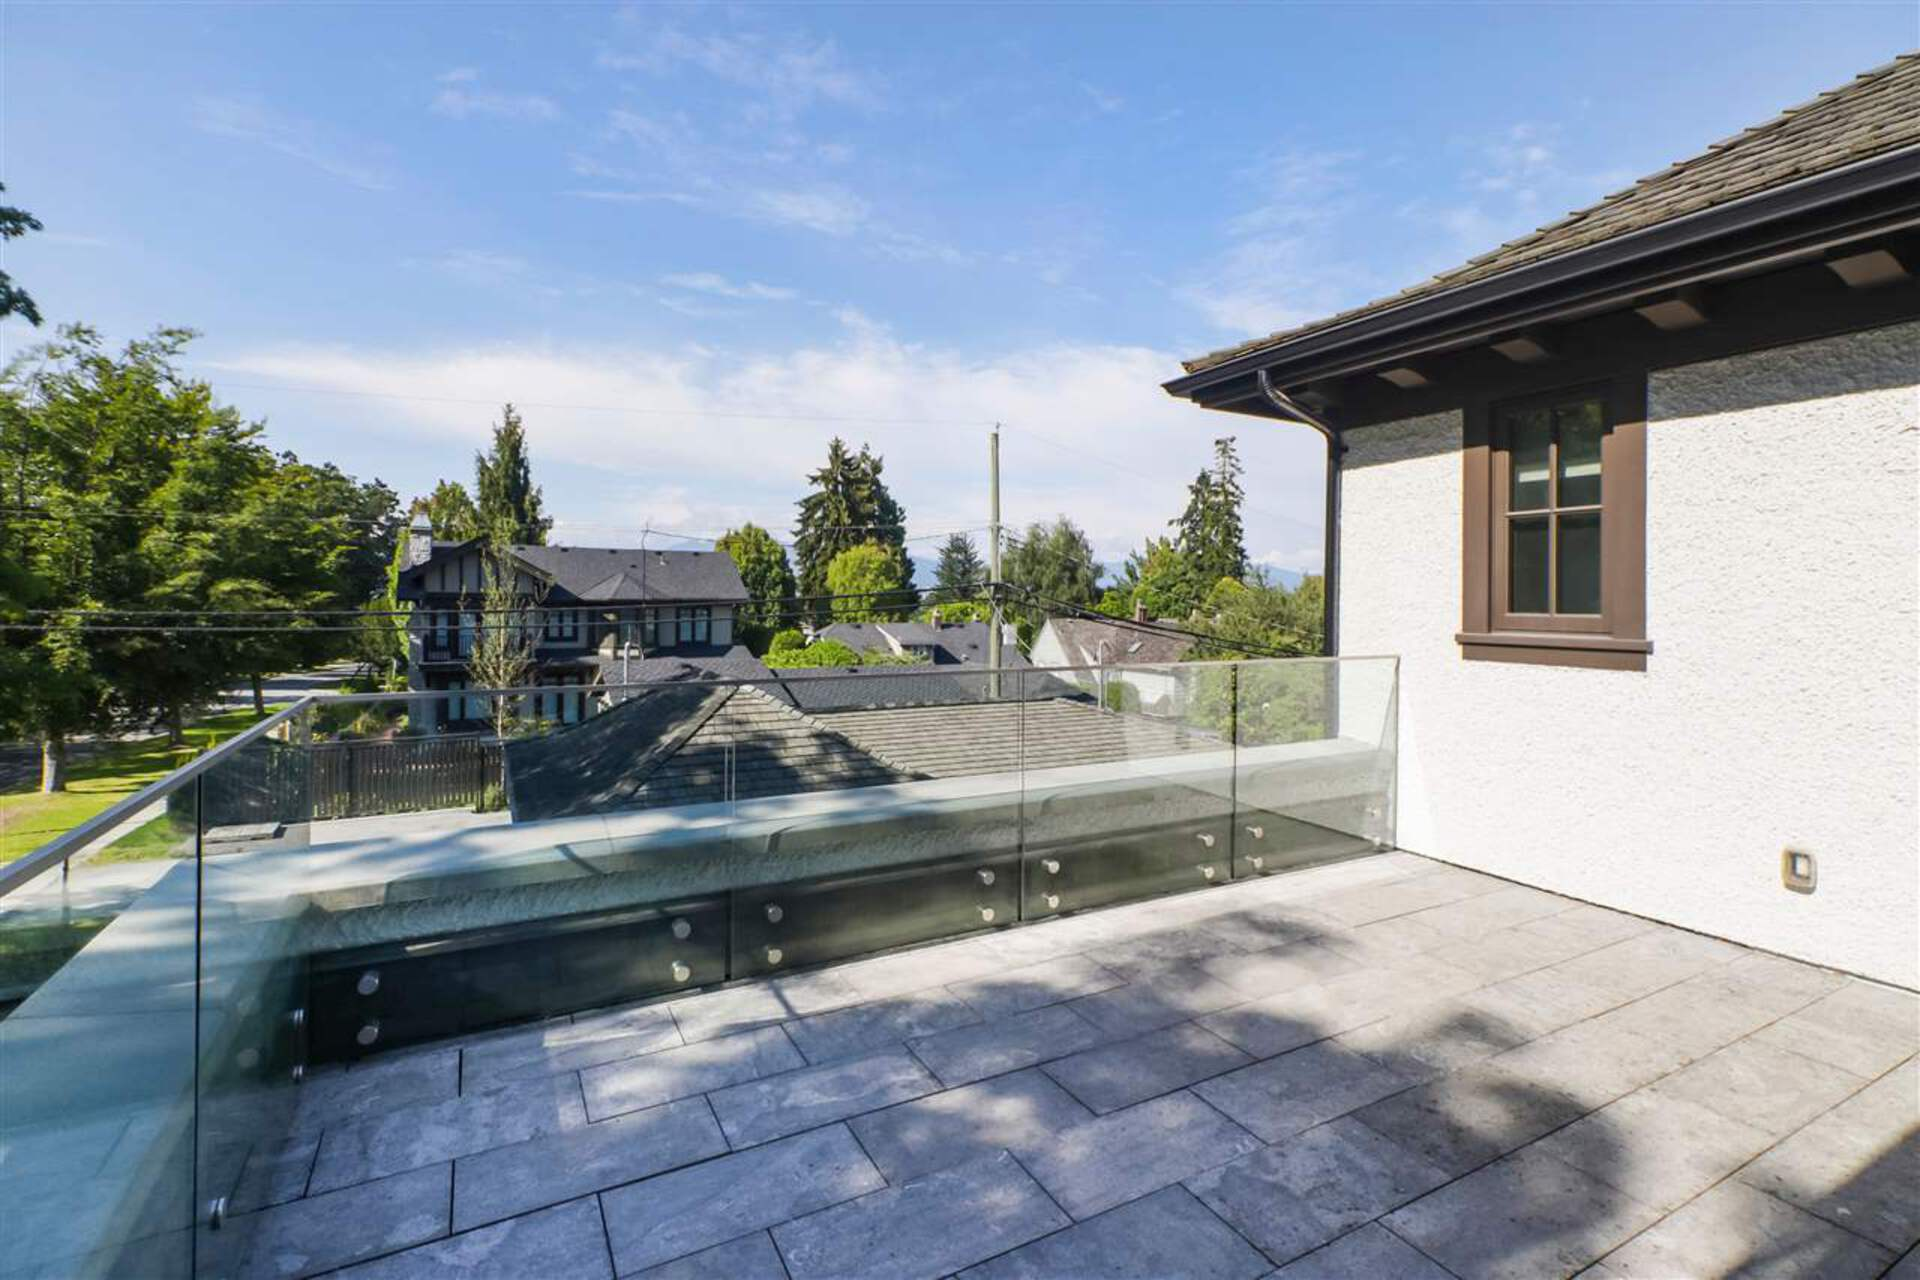 2289-w-36th-avenue-quilchena-vancouver-west-28-1 at 2289 W 36th Avenue, Quilchena, Vancouver West